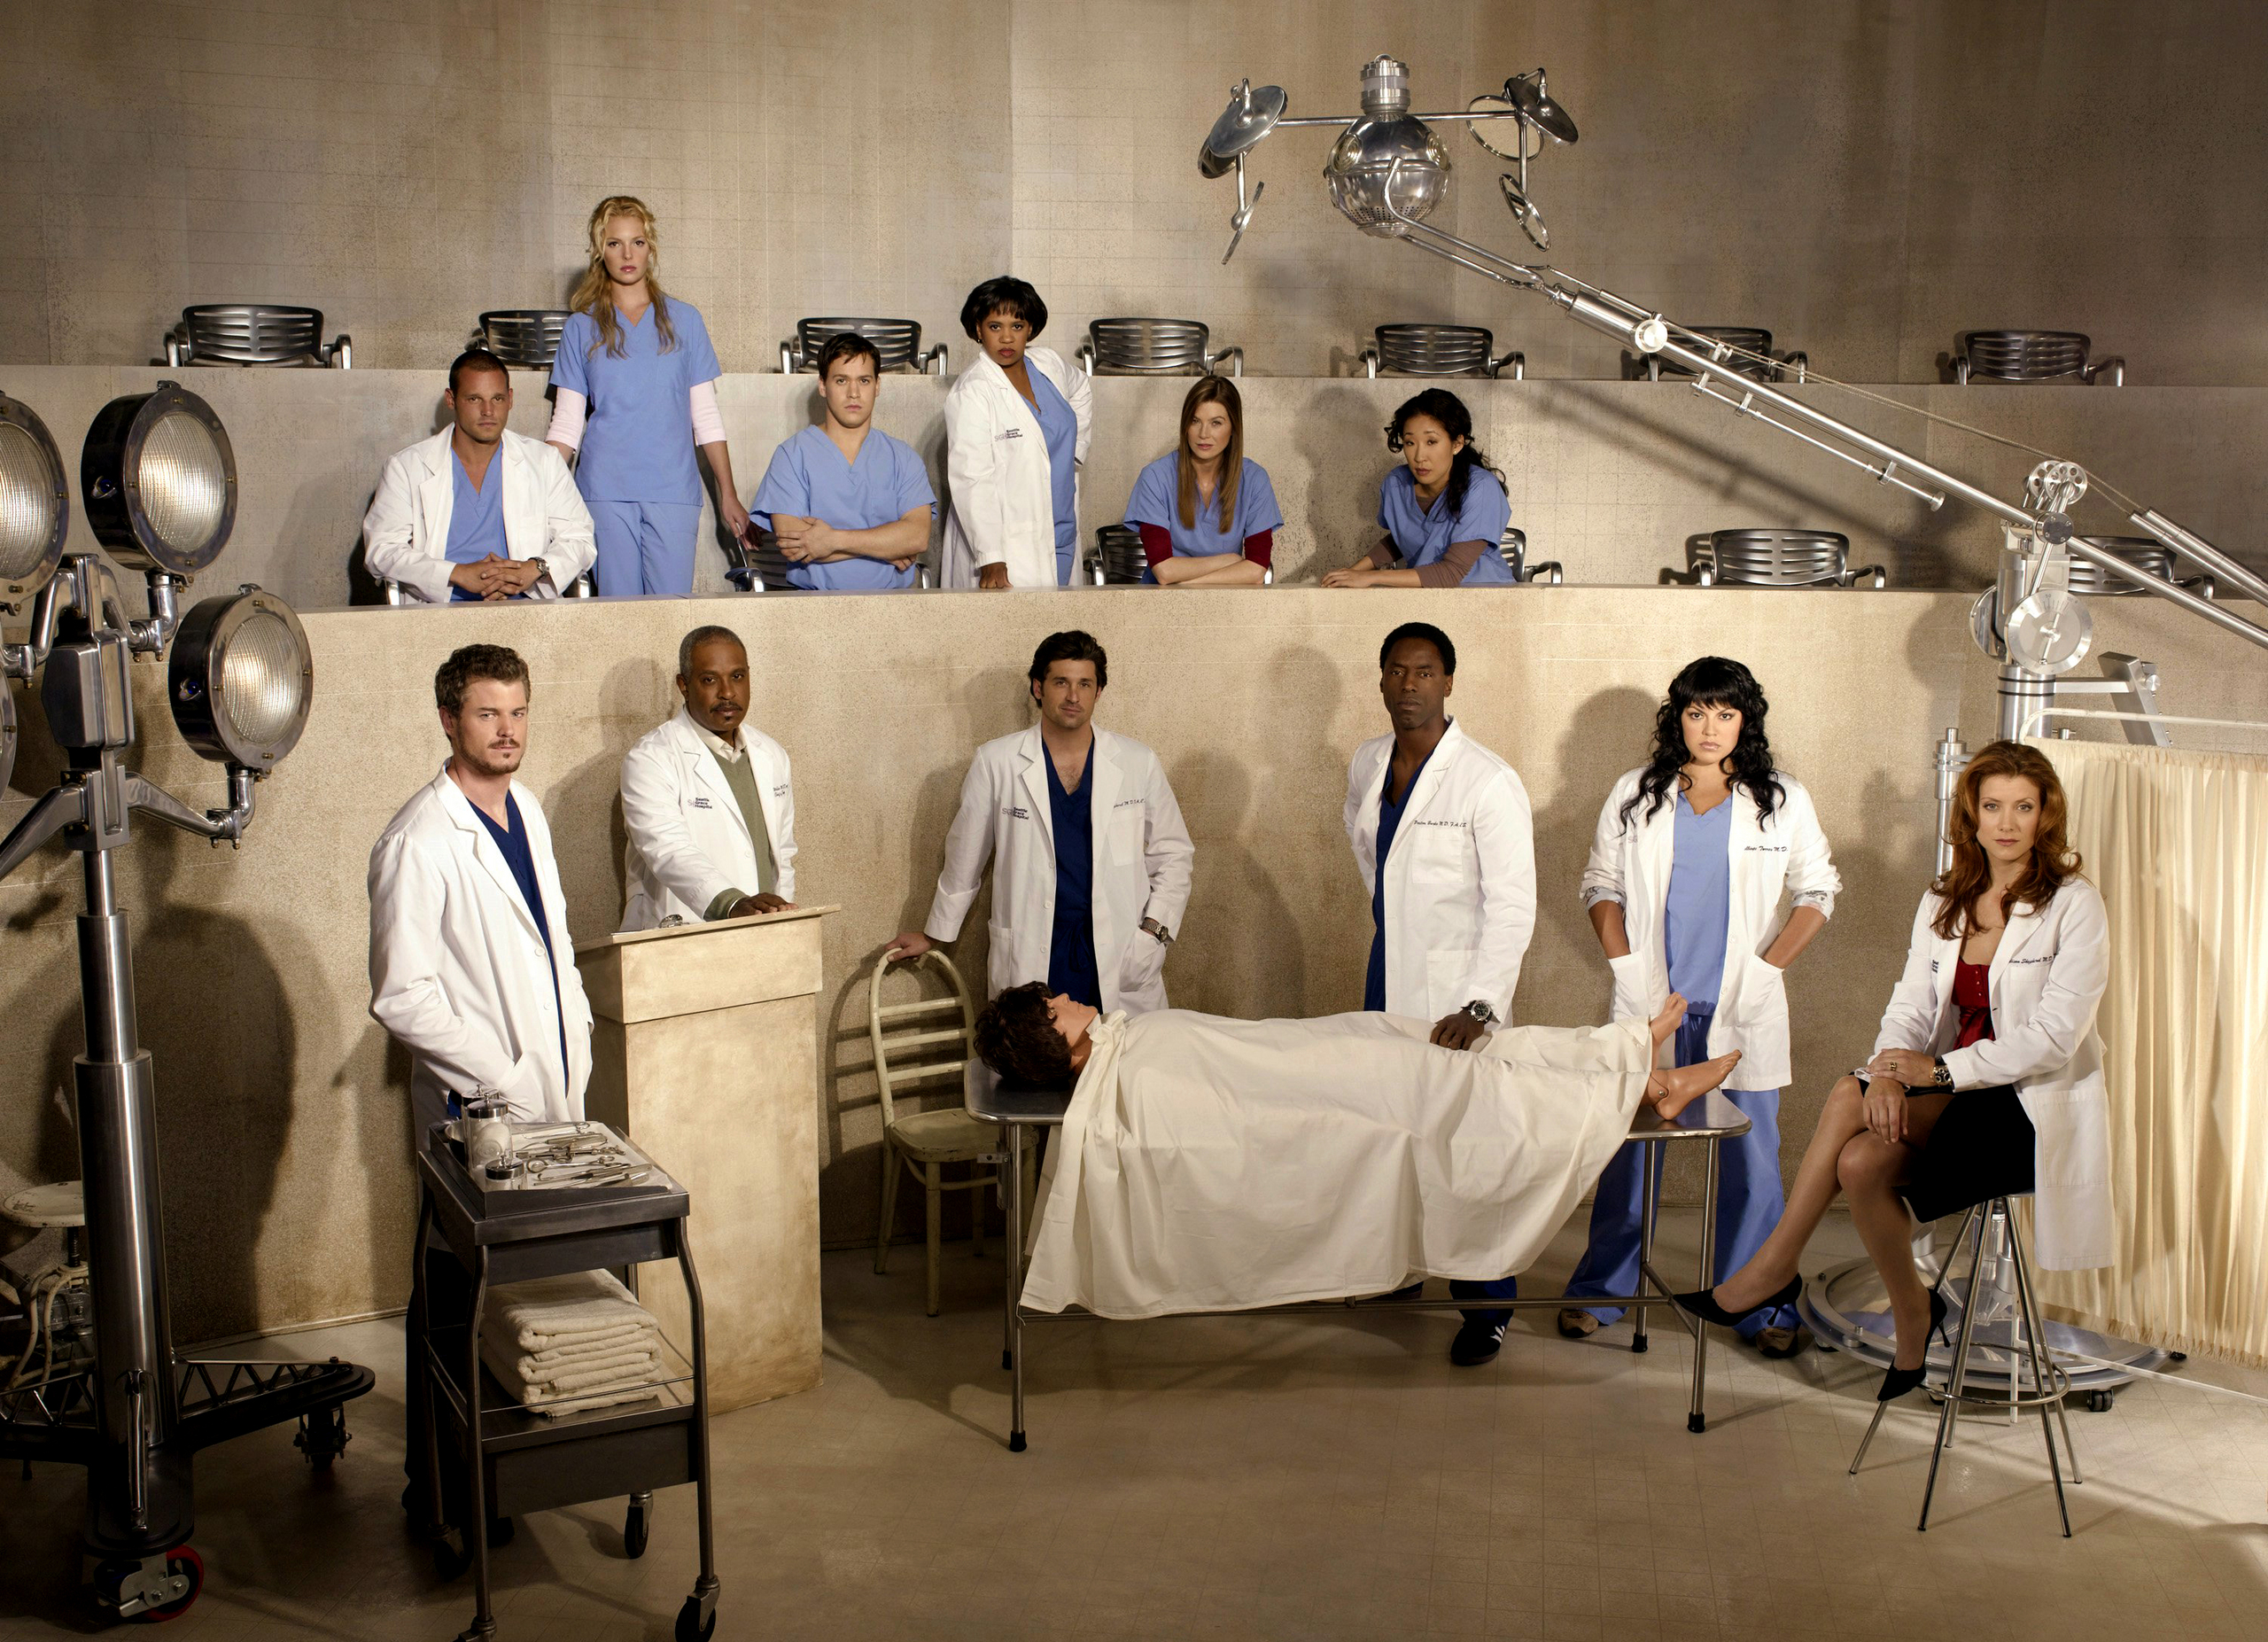 greys anatomy - Grey's Anatomy Photo (14052693) - Fanpop